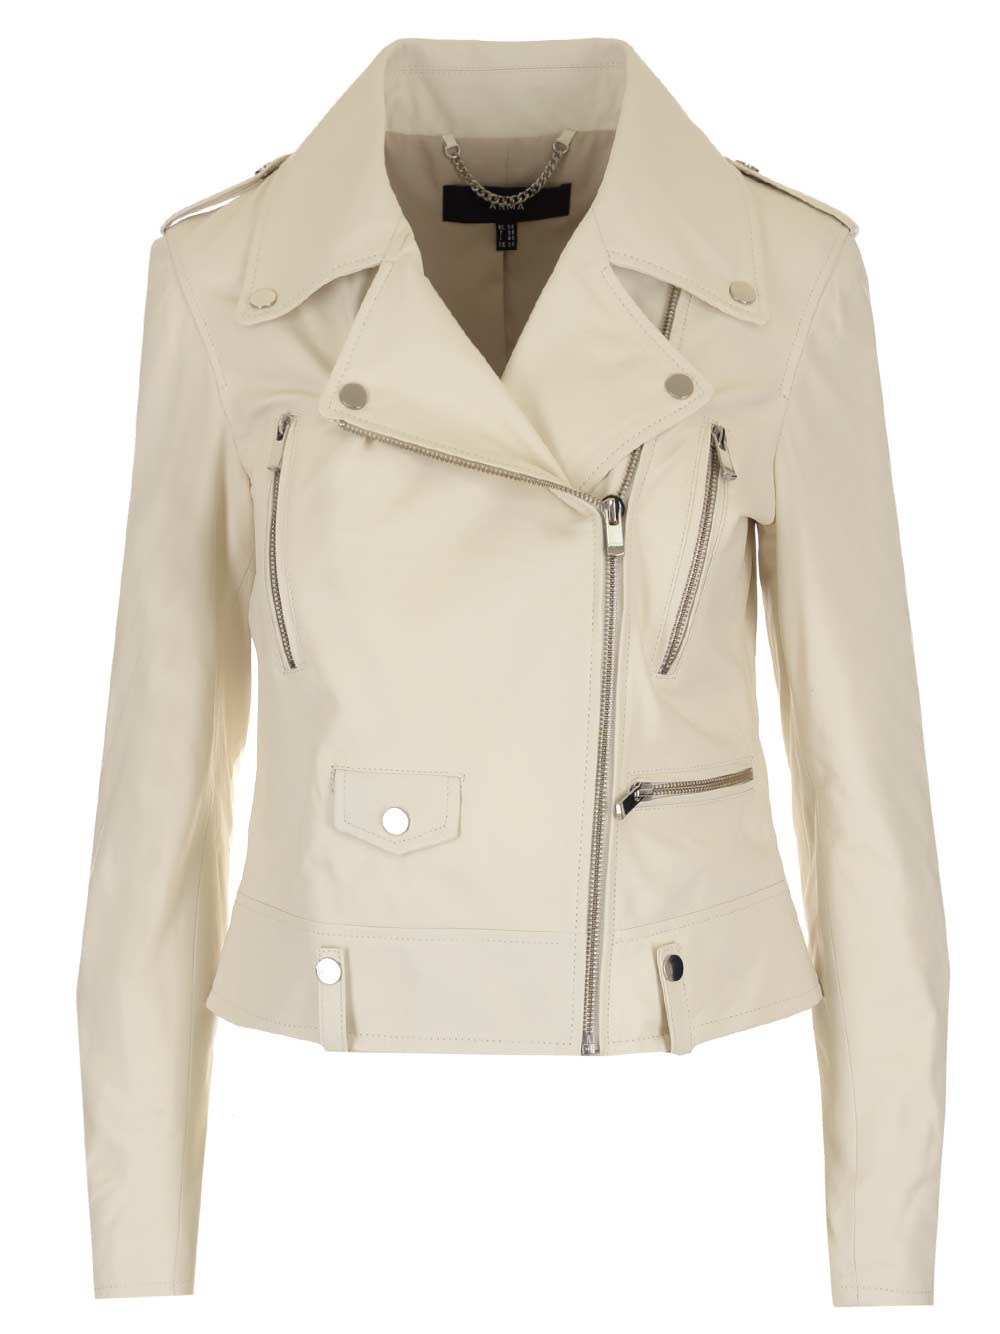 ARMA White Leather Biker Jacket